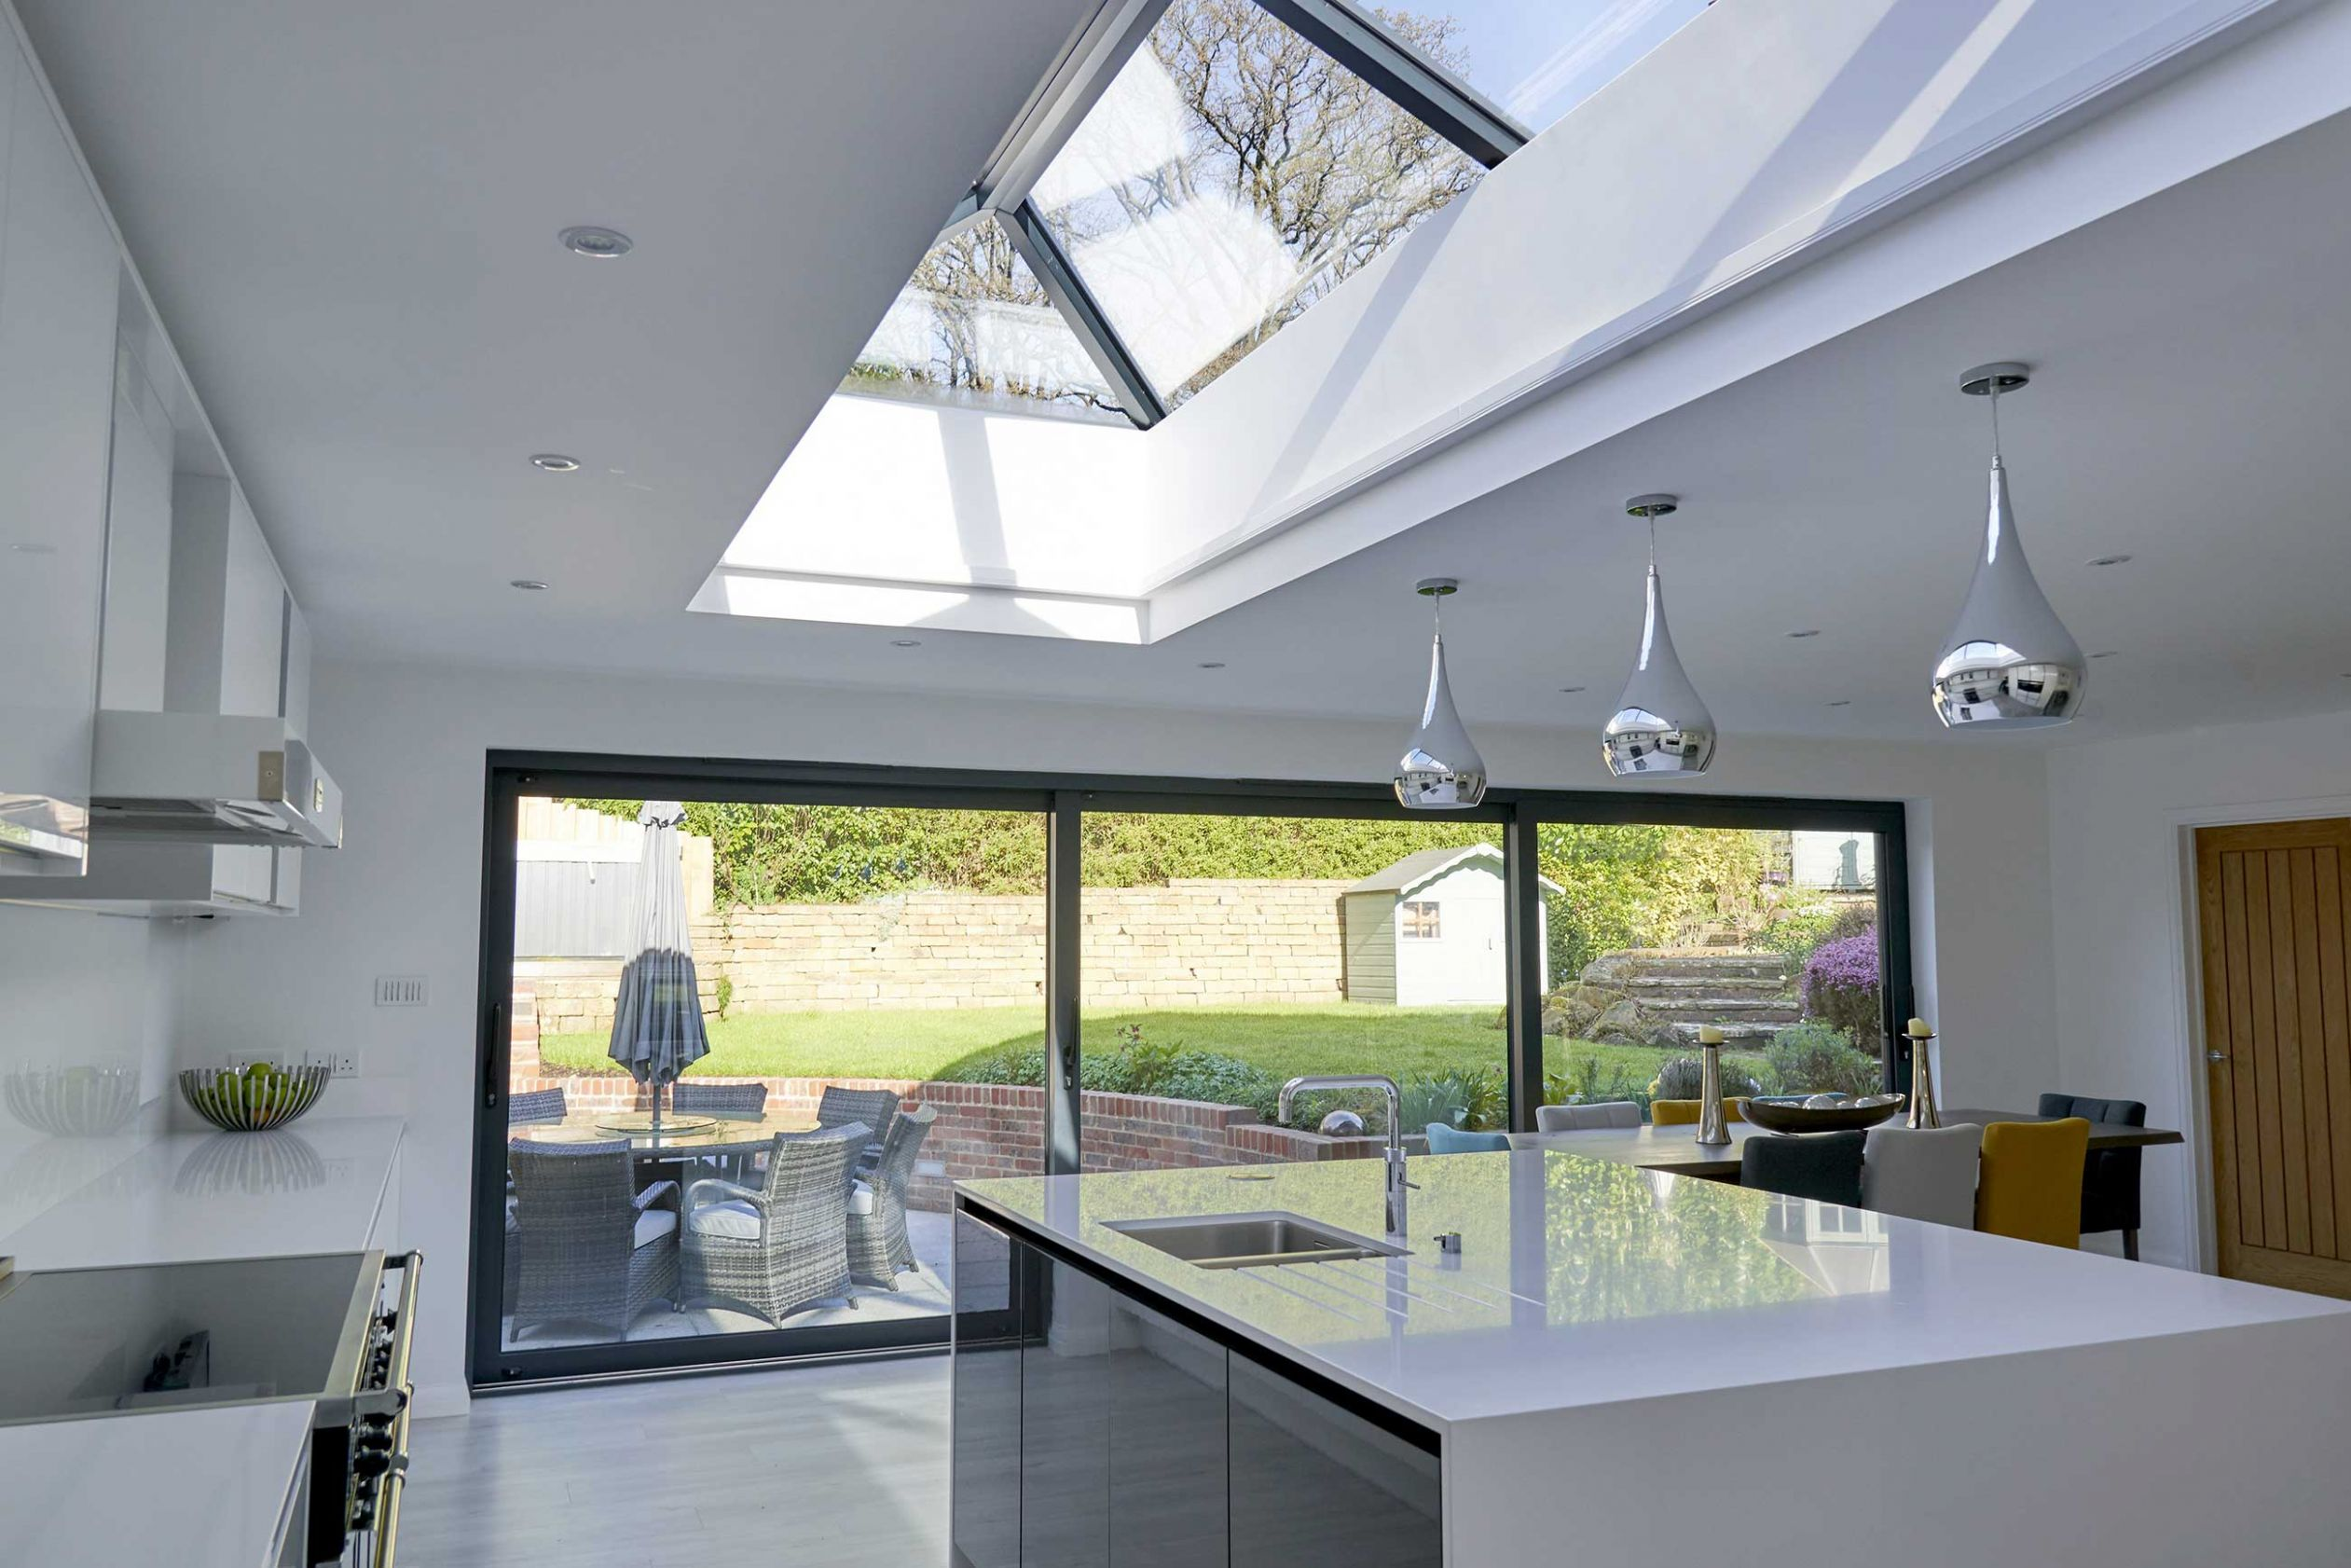 House Extension Ideas | House Extension Designs | House Extension Cost